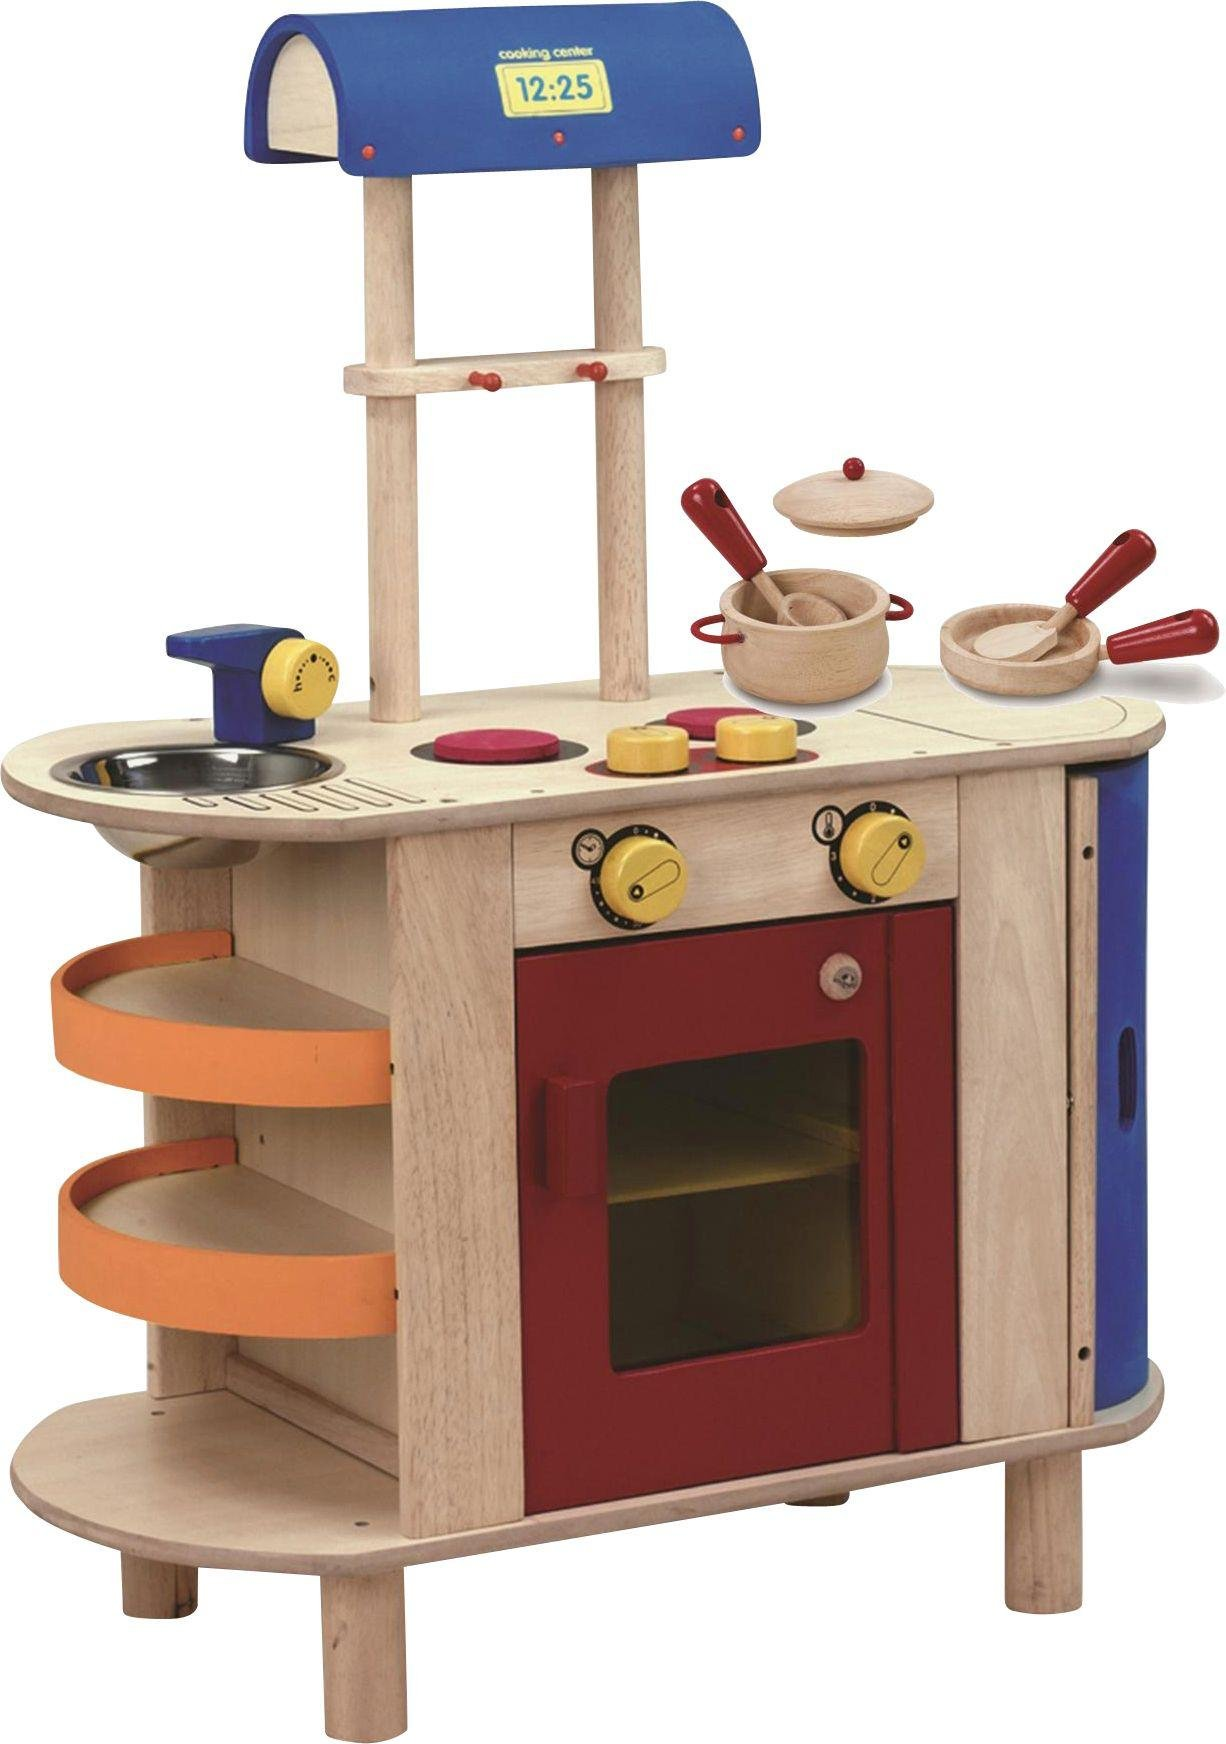 Image of Wonderworld Cooking Centre with Free Cooking Set.